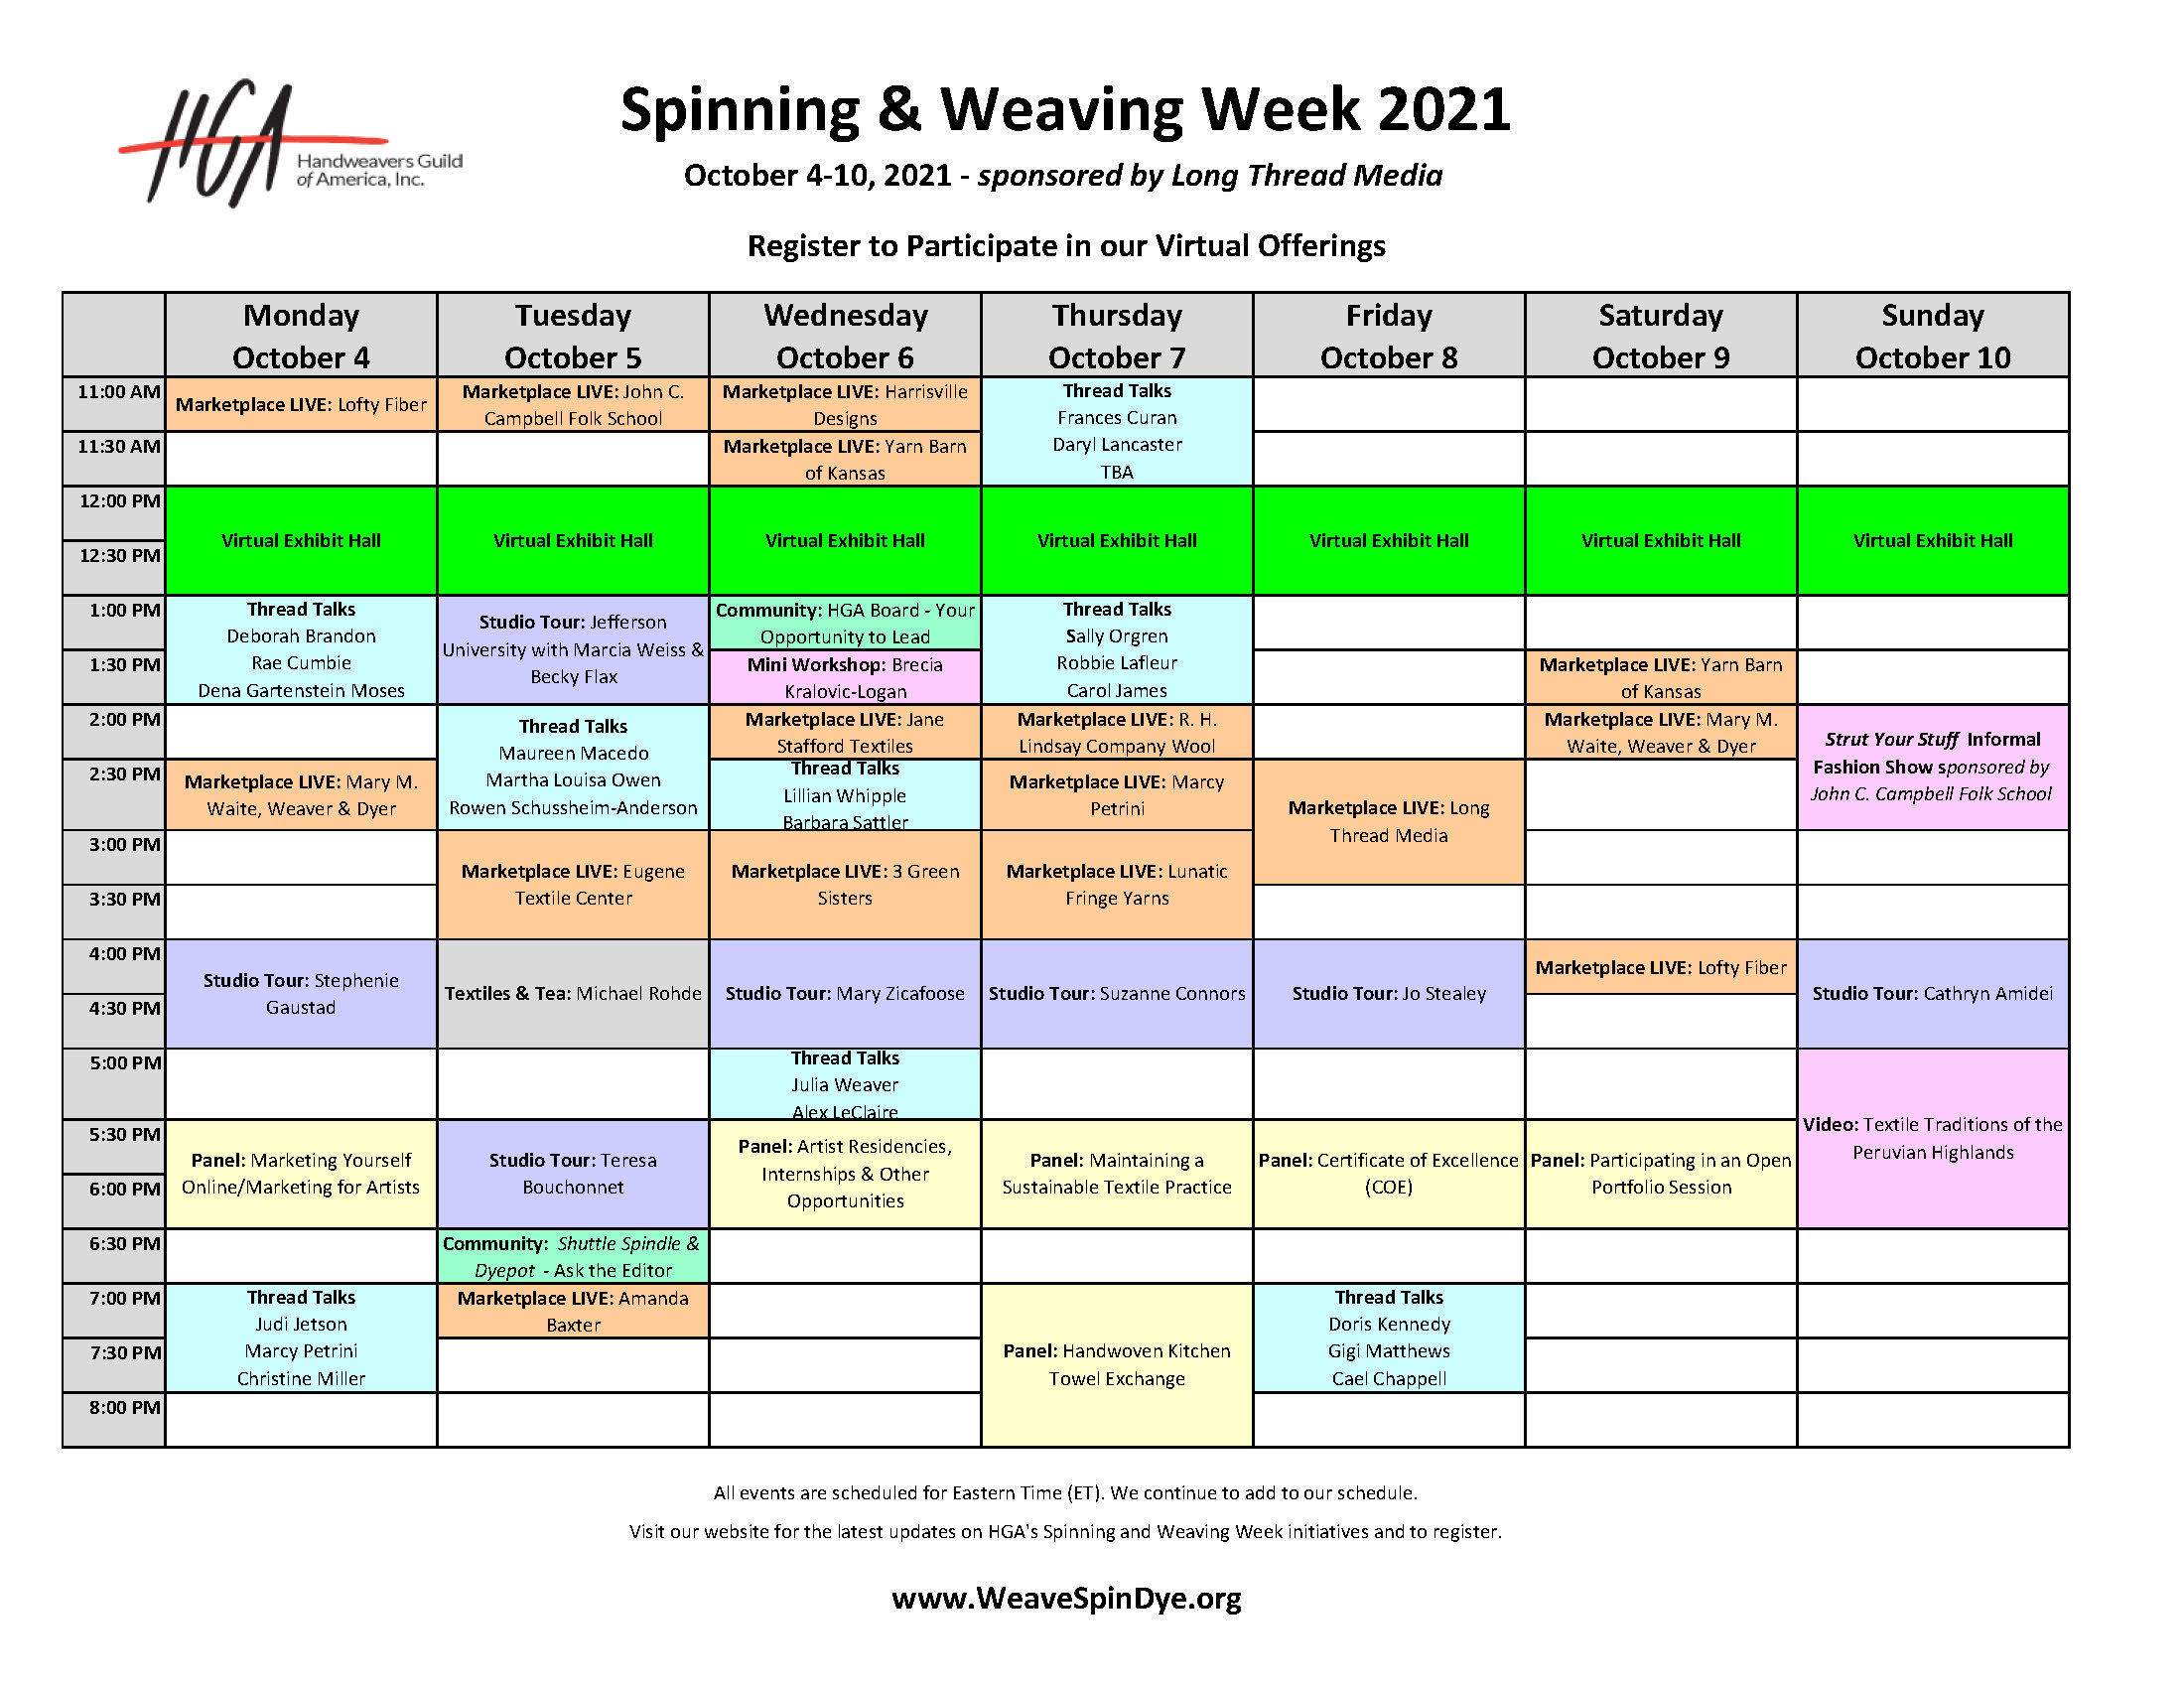 Spinning and Weaving Week 2021 Schedule